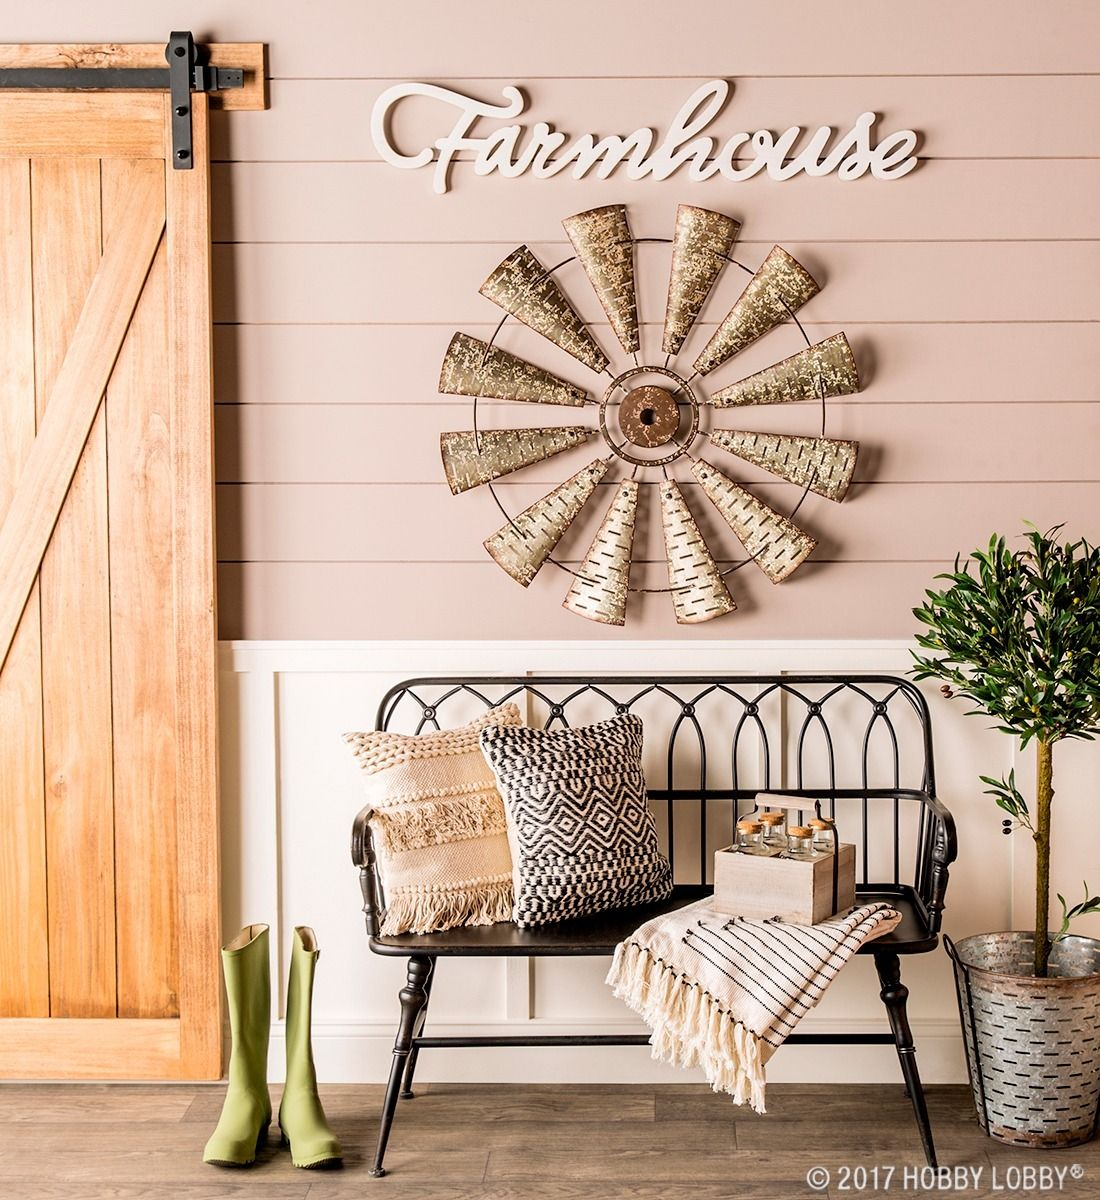 Simple Yet Stylish This Space Gives Us All The Farmhouse Feels